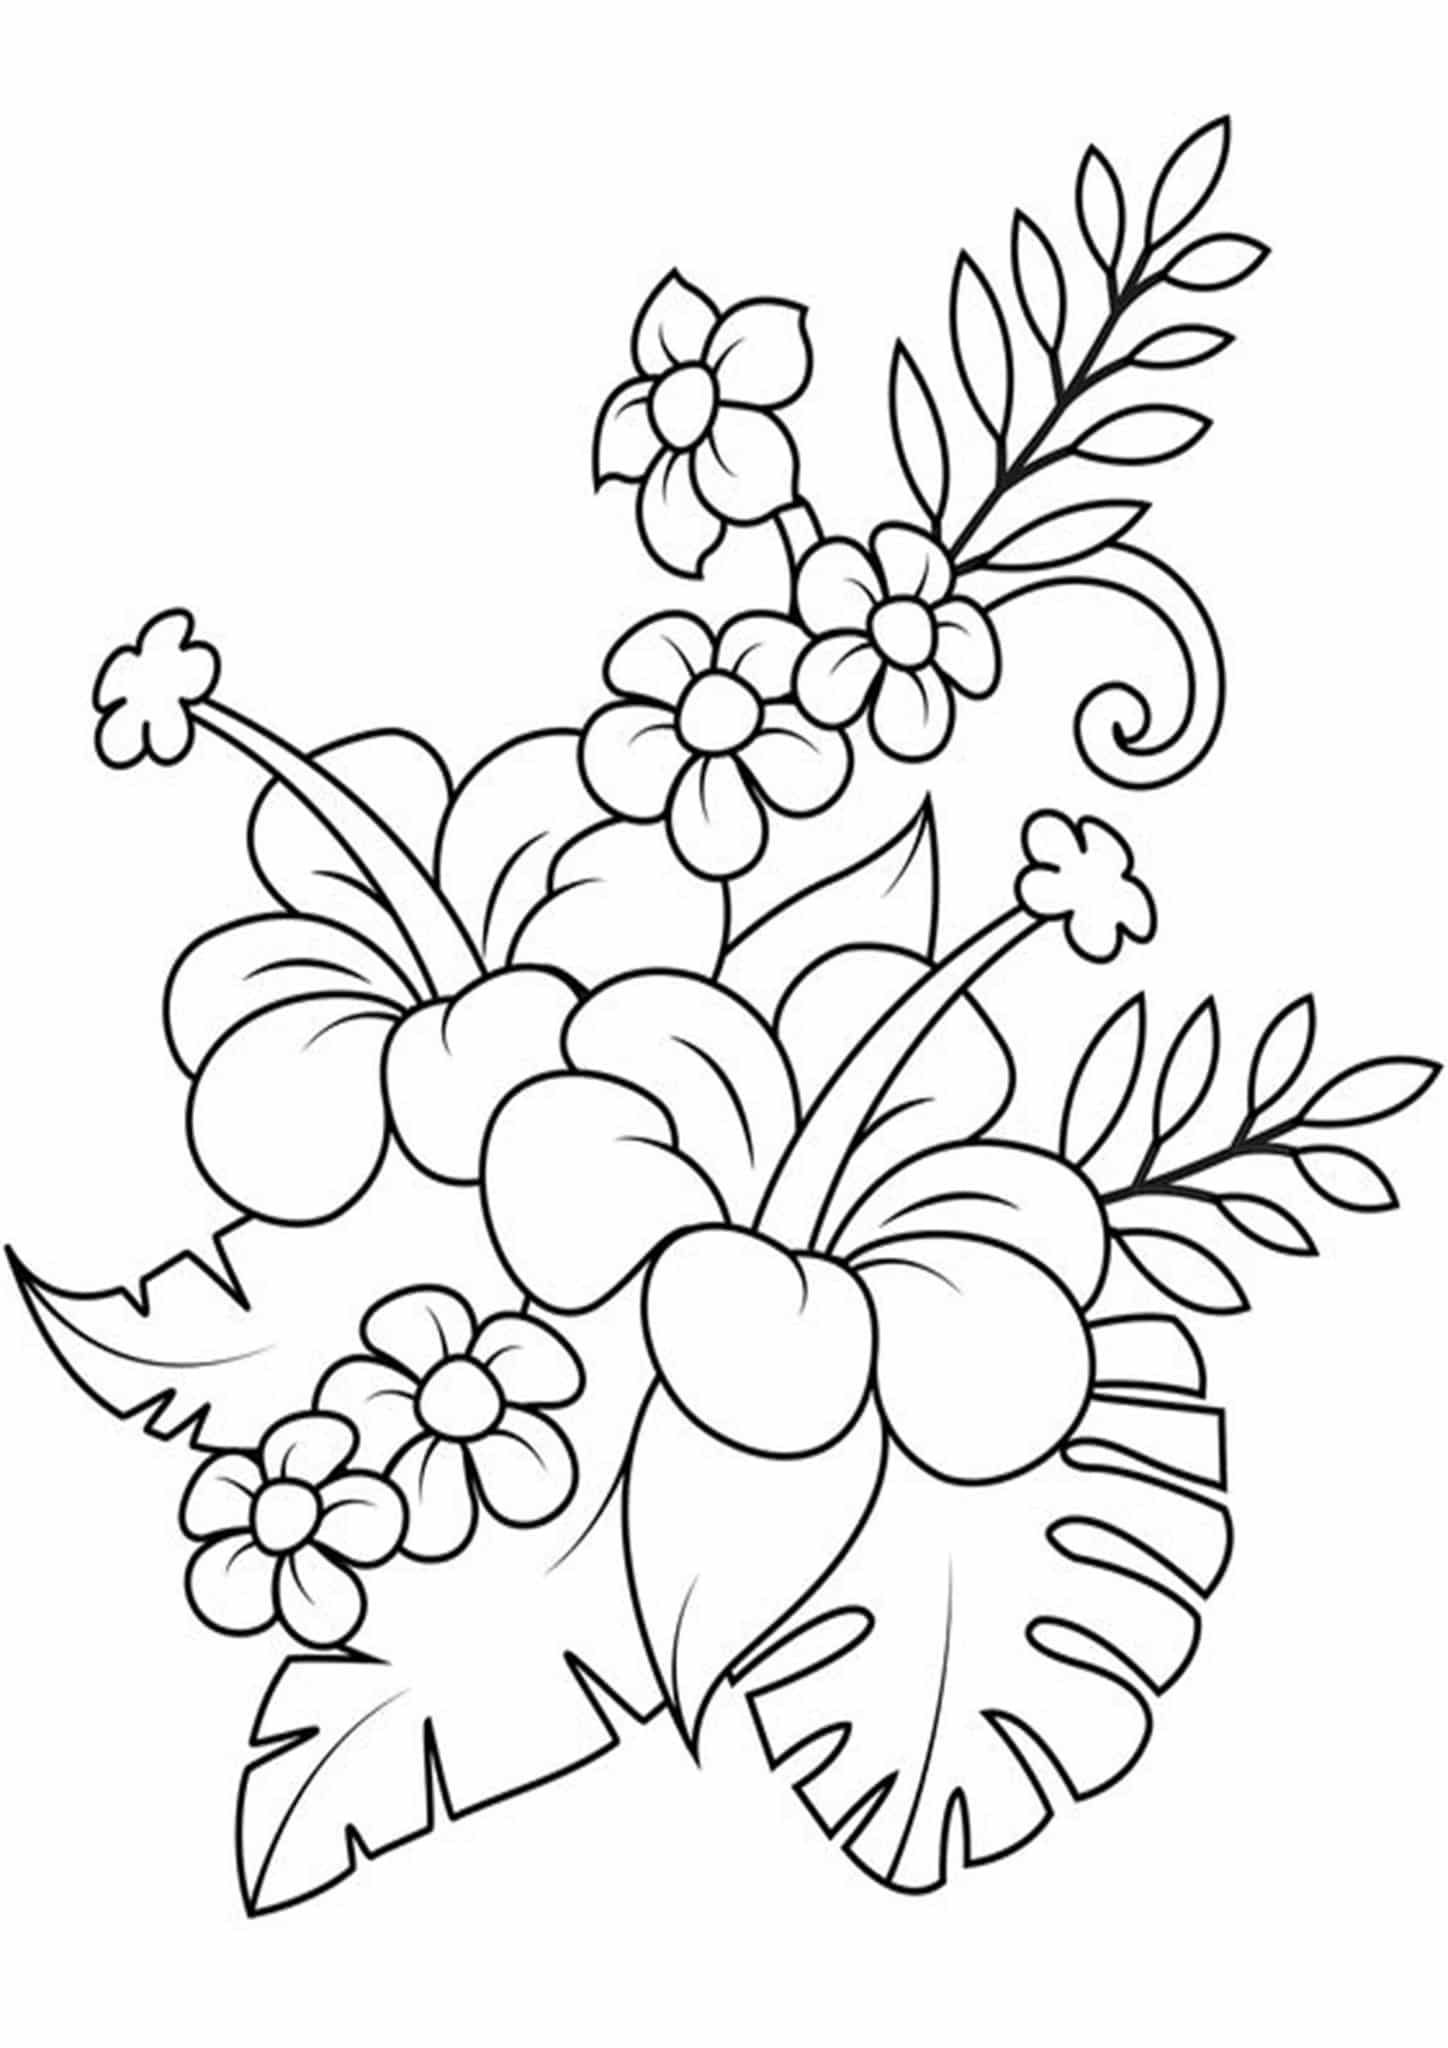 coloring pics of flowers free printable hibiscus coloring pages for kids pics flowers coloring of